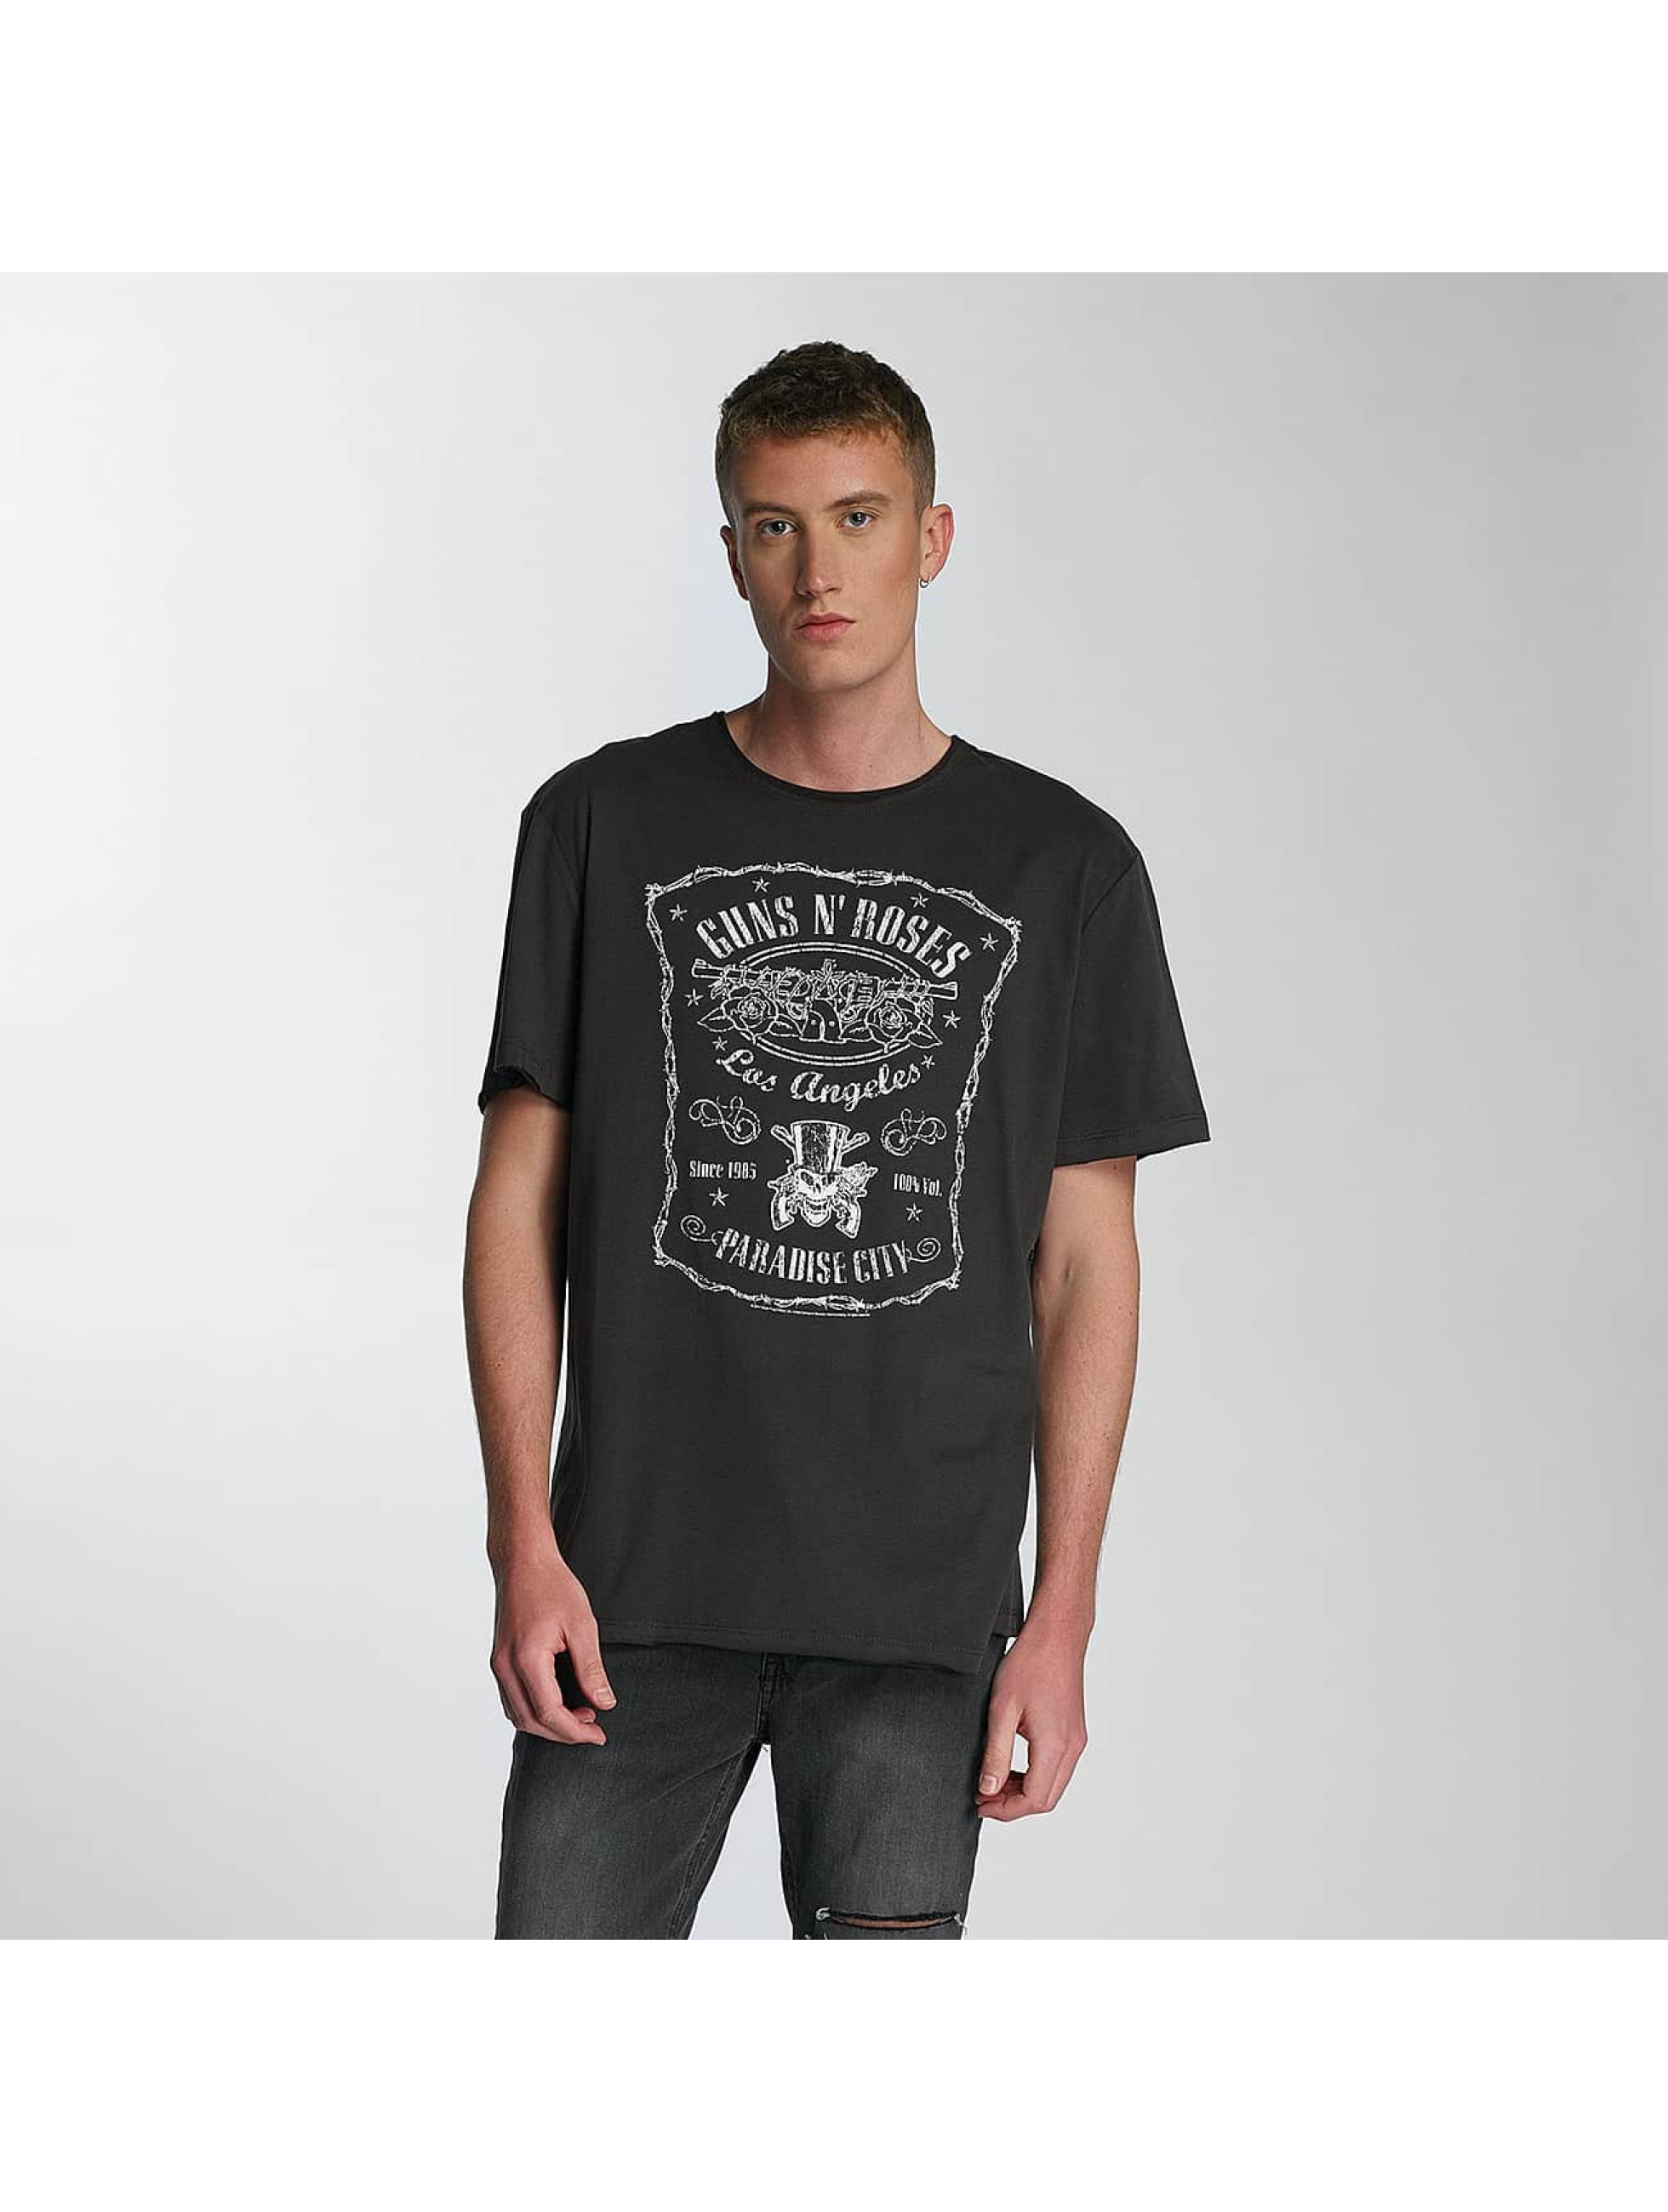 Amplified T-Shirt Guns & Roses LA Paradise City grey